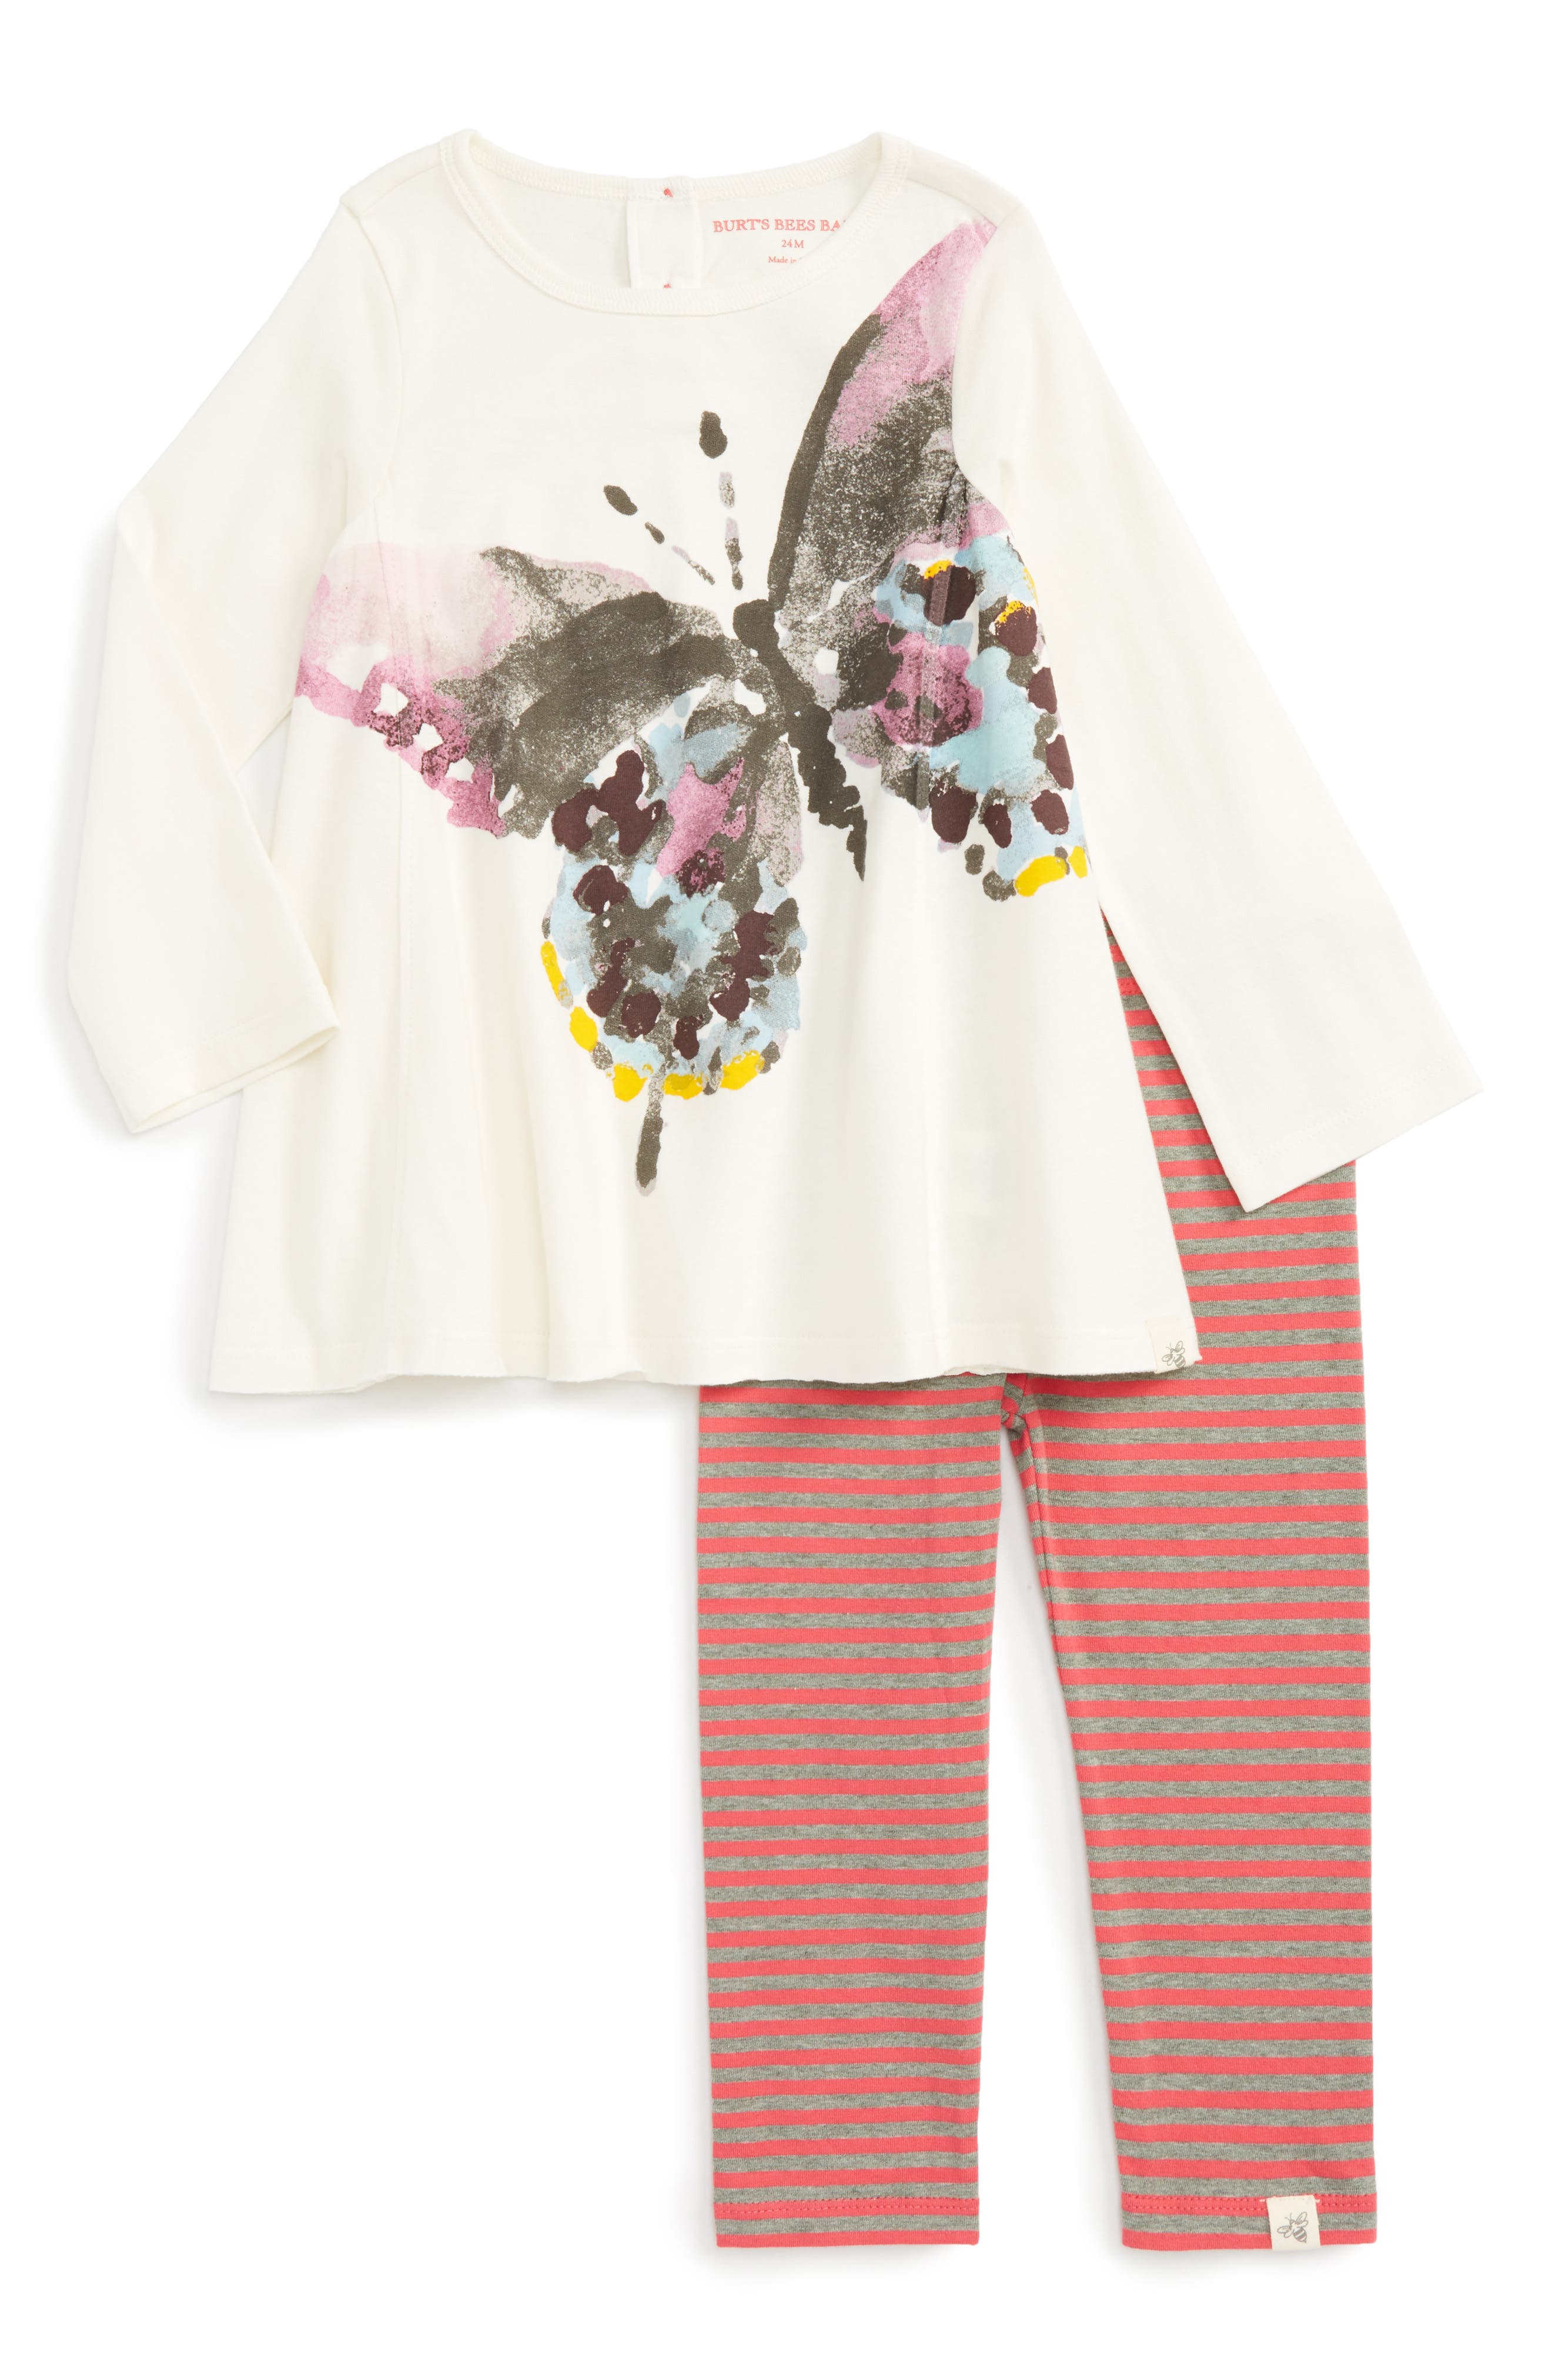 Alternate Image 1 Selected - Burt's Bees Baby Woodland Butterfly Tunic & Leggings Set (Baby Girls)